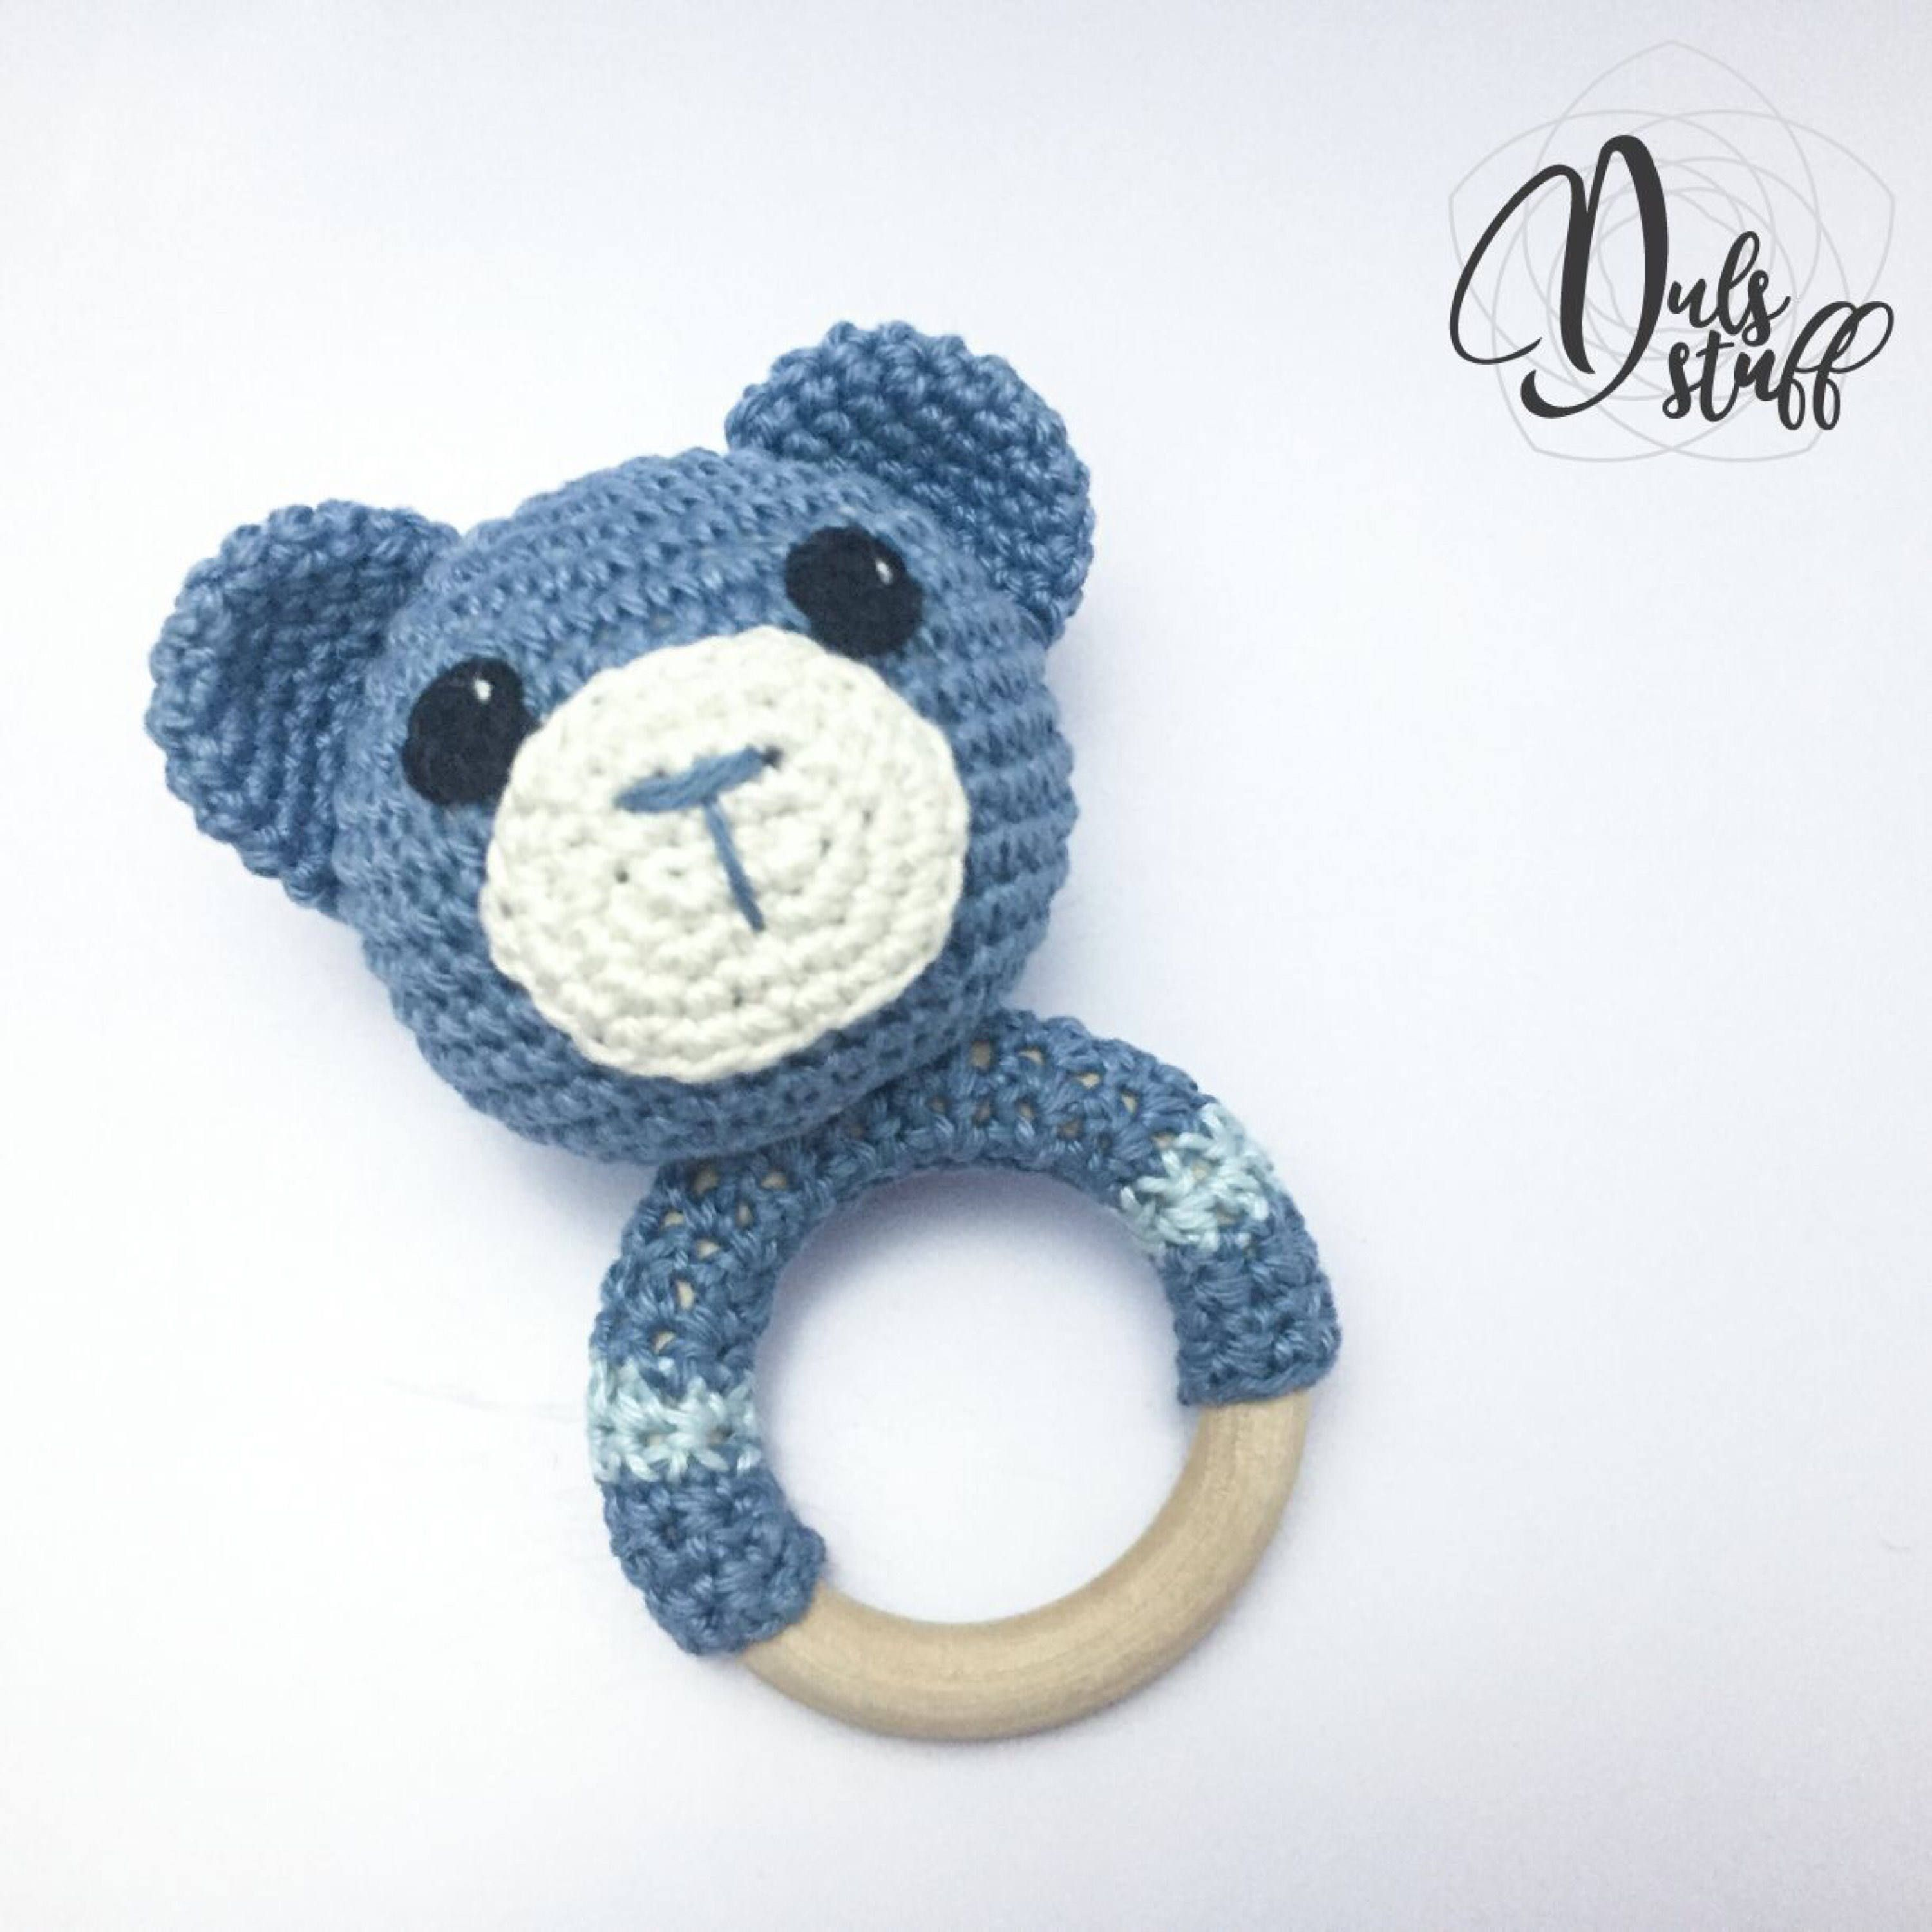 Crochet and wooden bear baby rattle and teether | Proyectos de ...